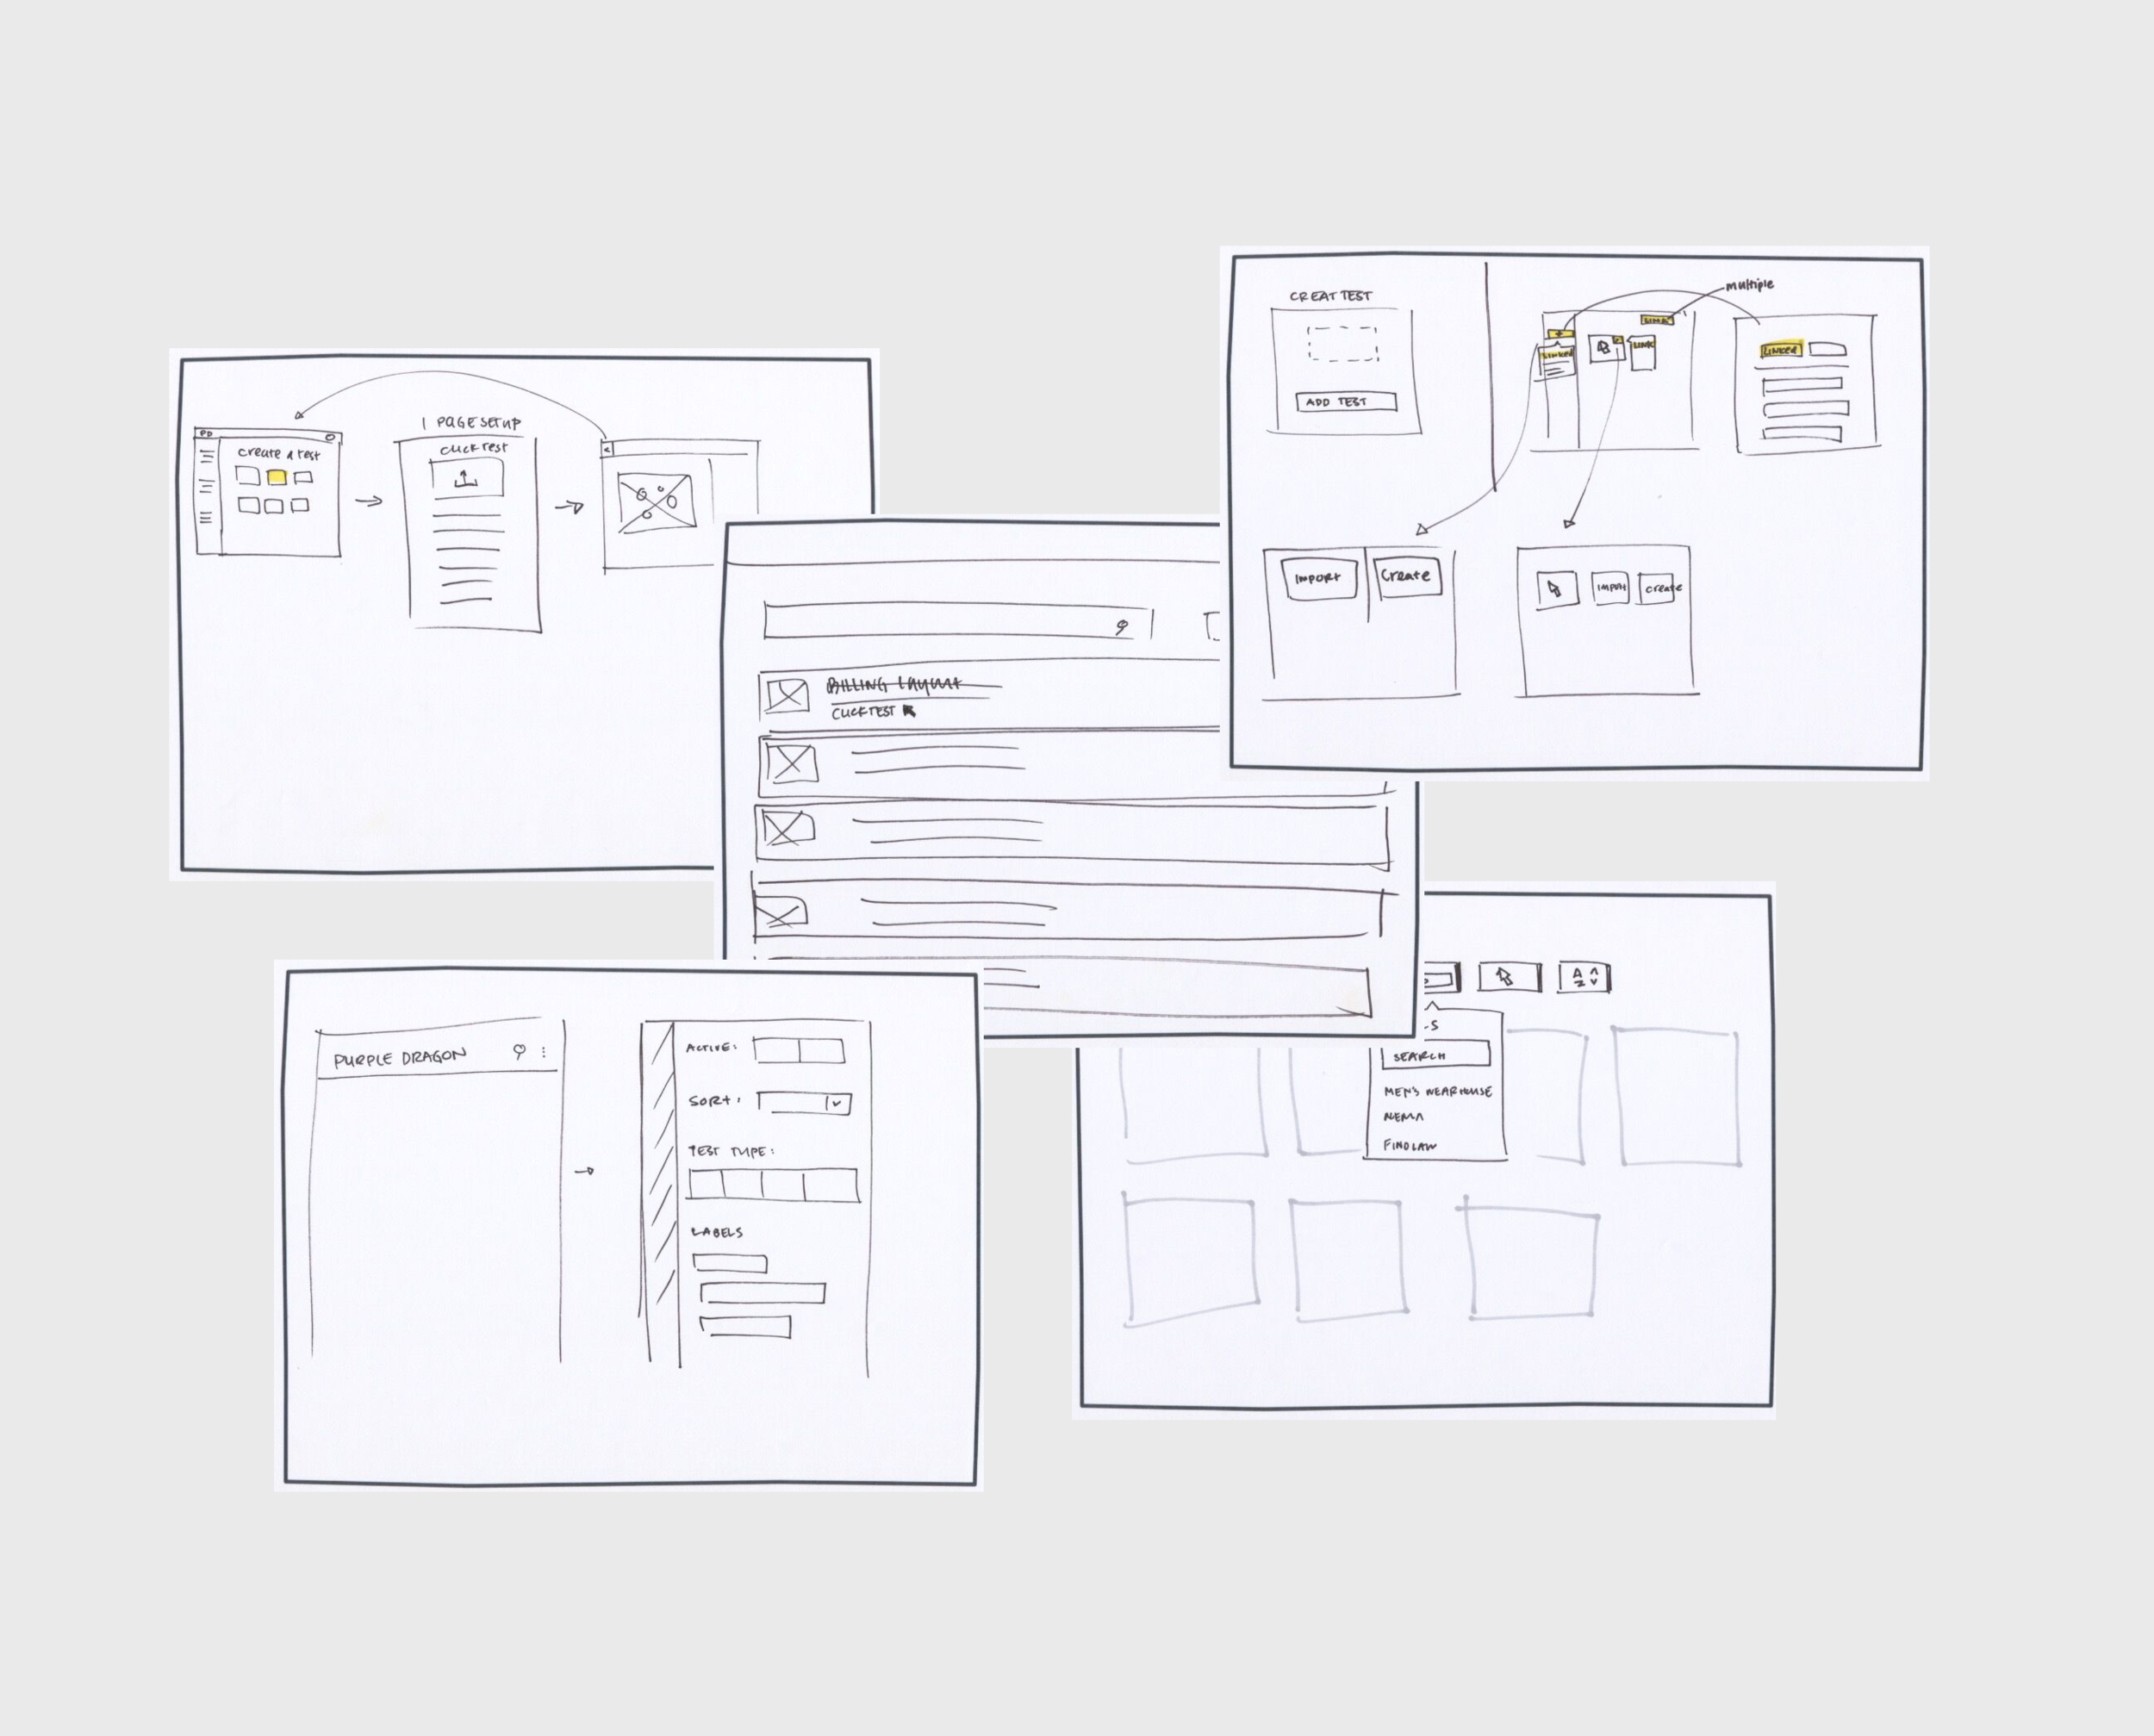 Sketches - We used pen and paper to get all of our ideas out before moving to higher fidelity wireframes. Being able to present ideas quickly, doodle on top of, or even toss out these sketches allowed us to iterate more efficiently and effectively.